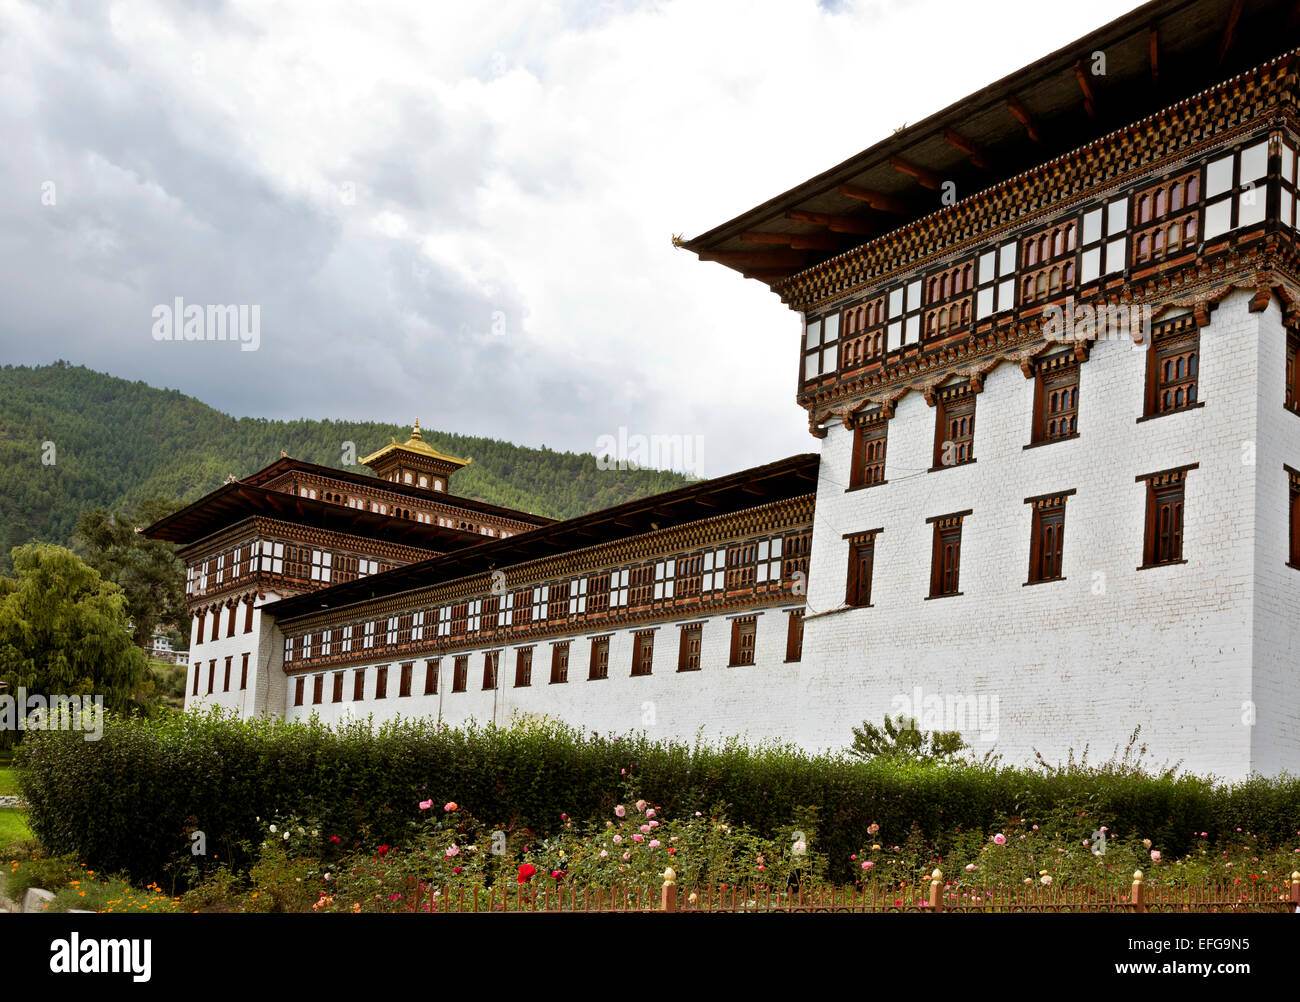 BU00018-00...BHUTAN - Tashichoedzong in the capital city of Thimphu, the center of government for the country. - Stock Image